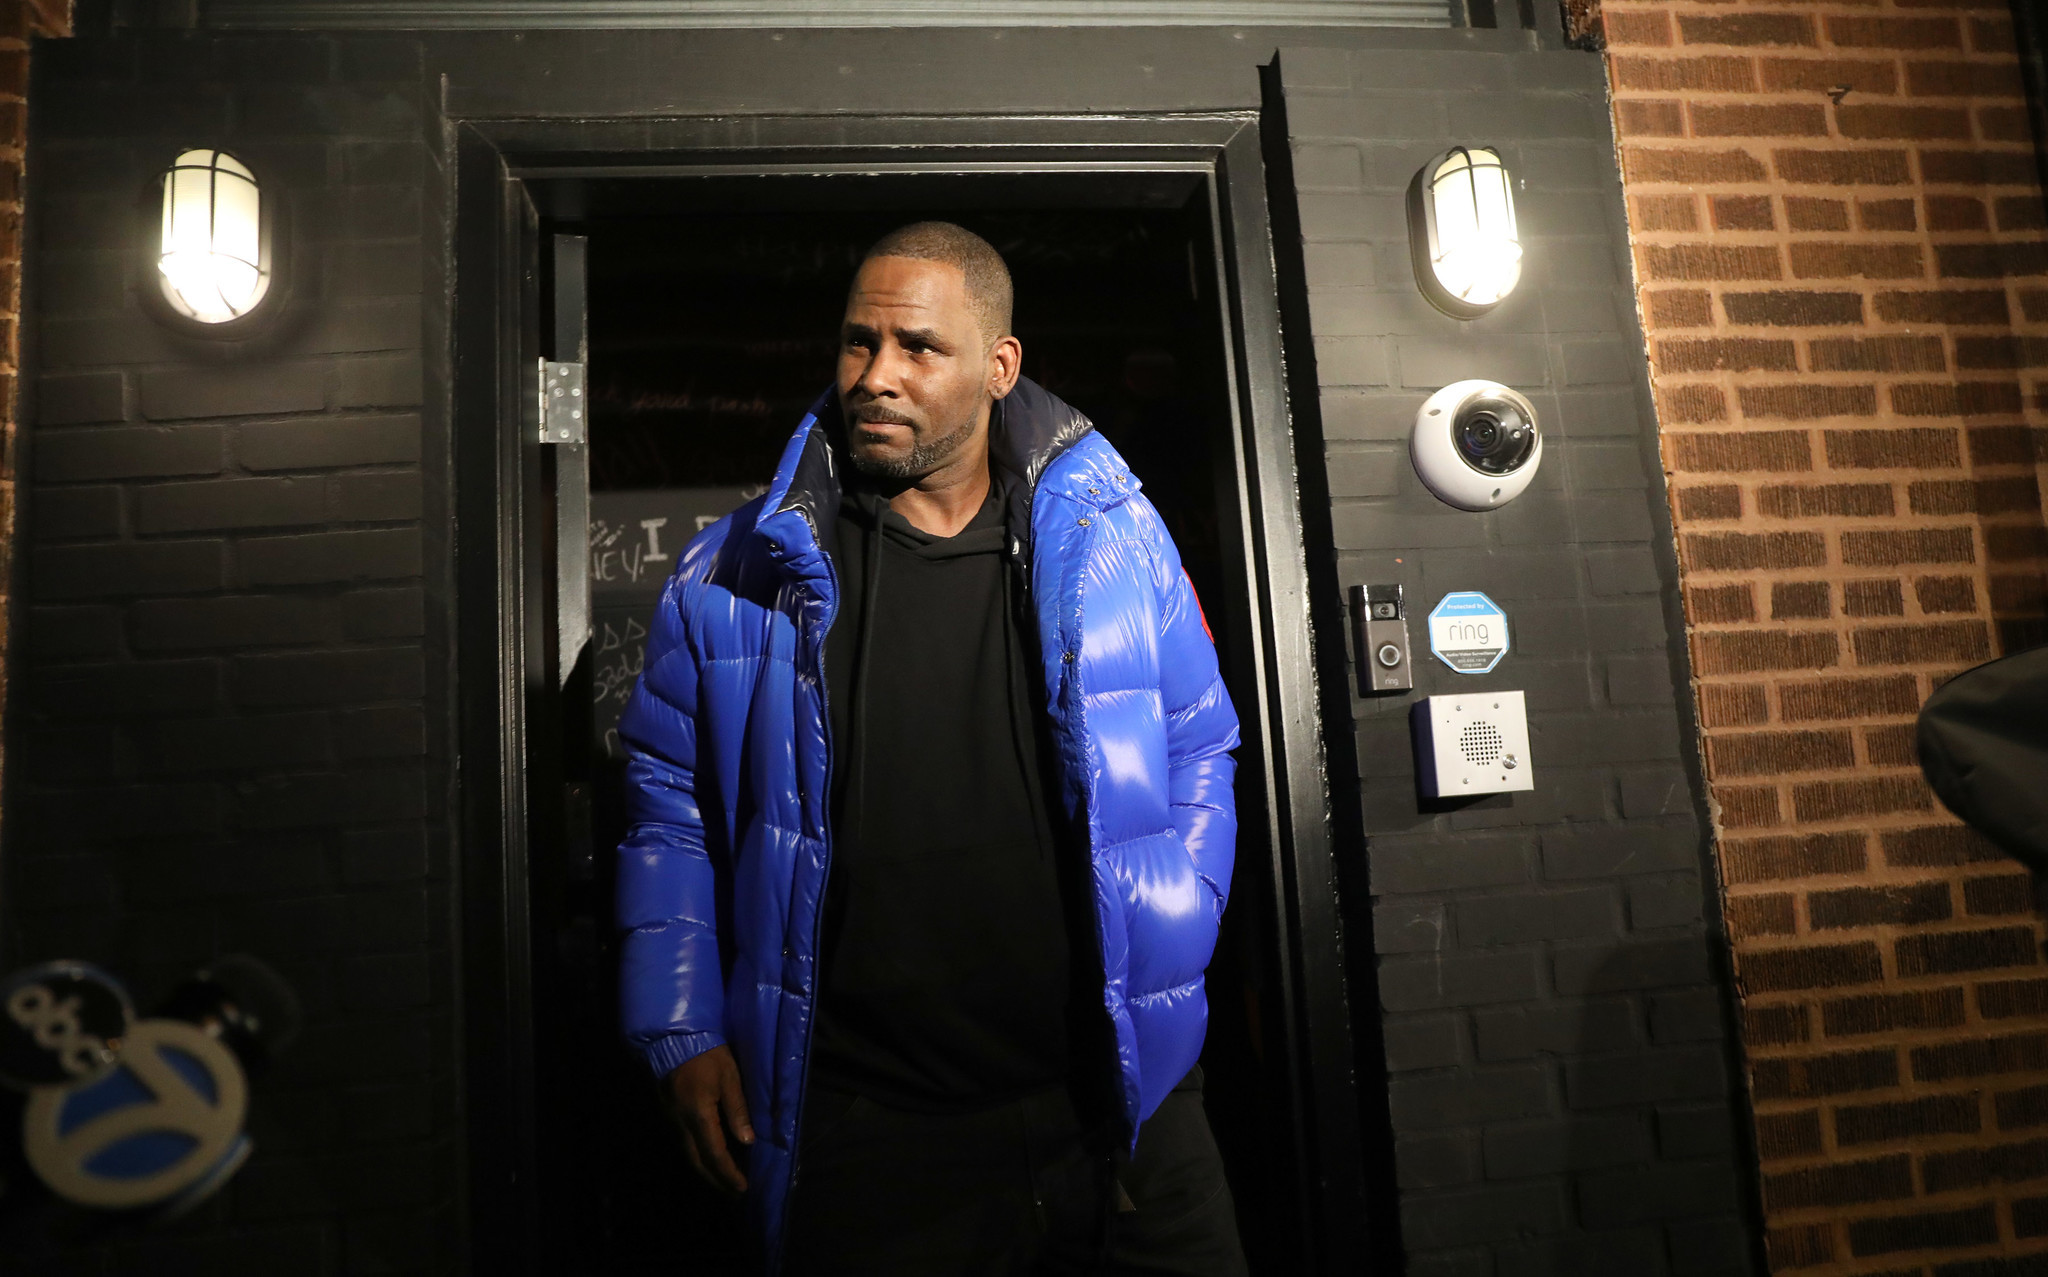 Prosecutors reveal sordid details of sex abuse allegations against R. Kelly as judge sets $1 million bond